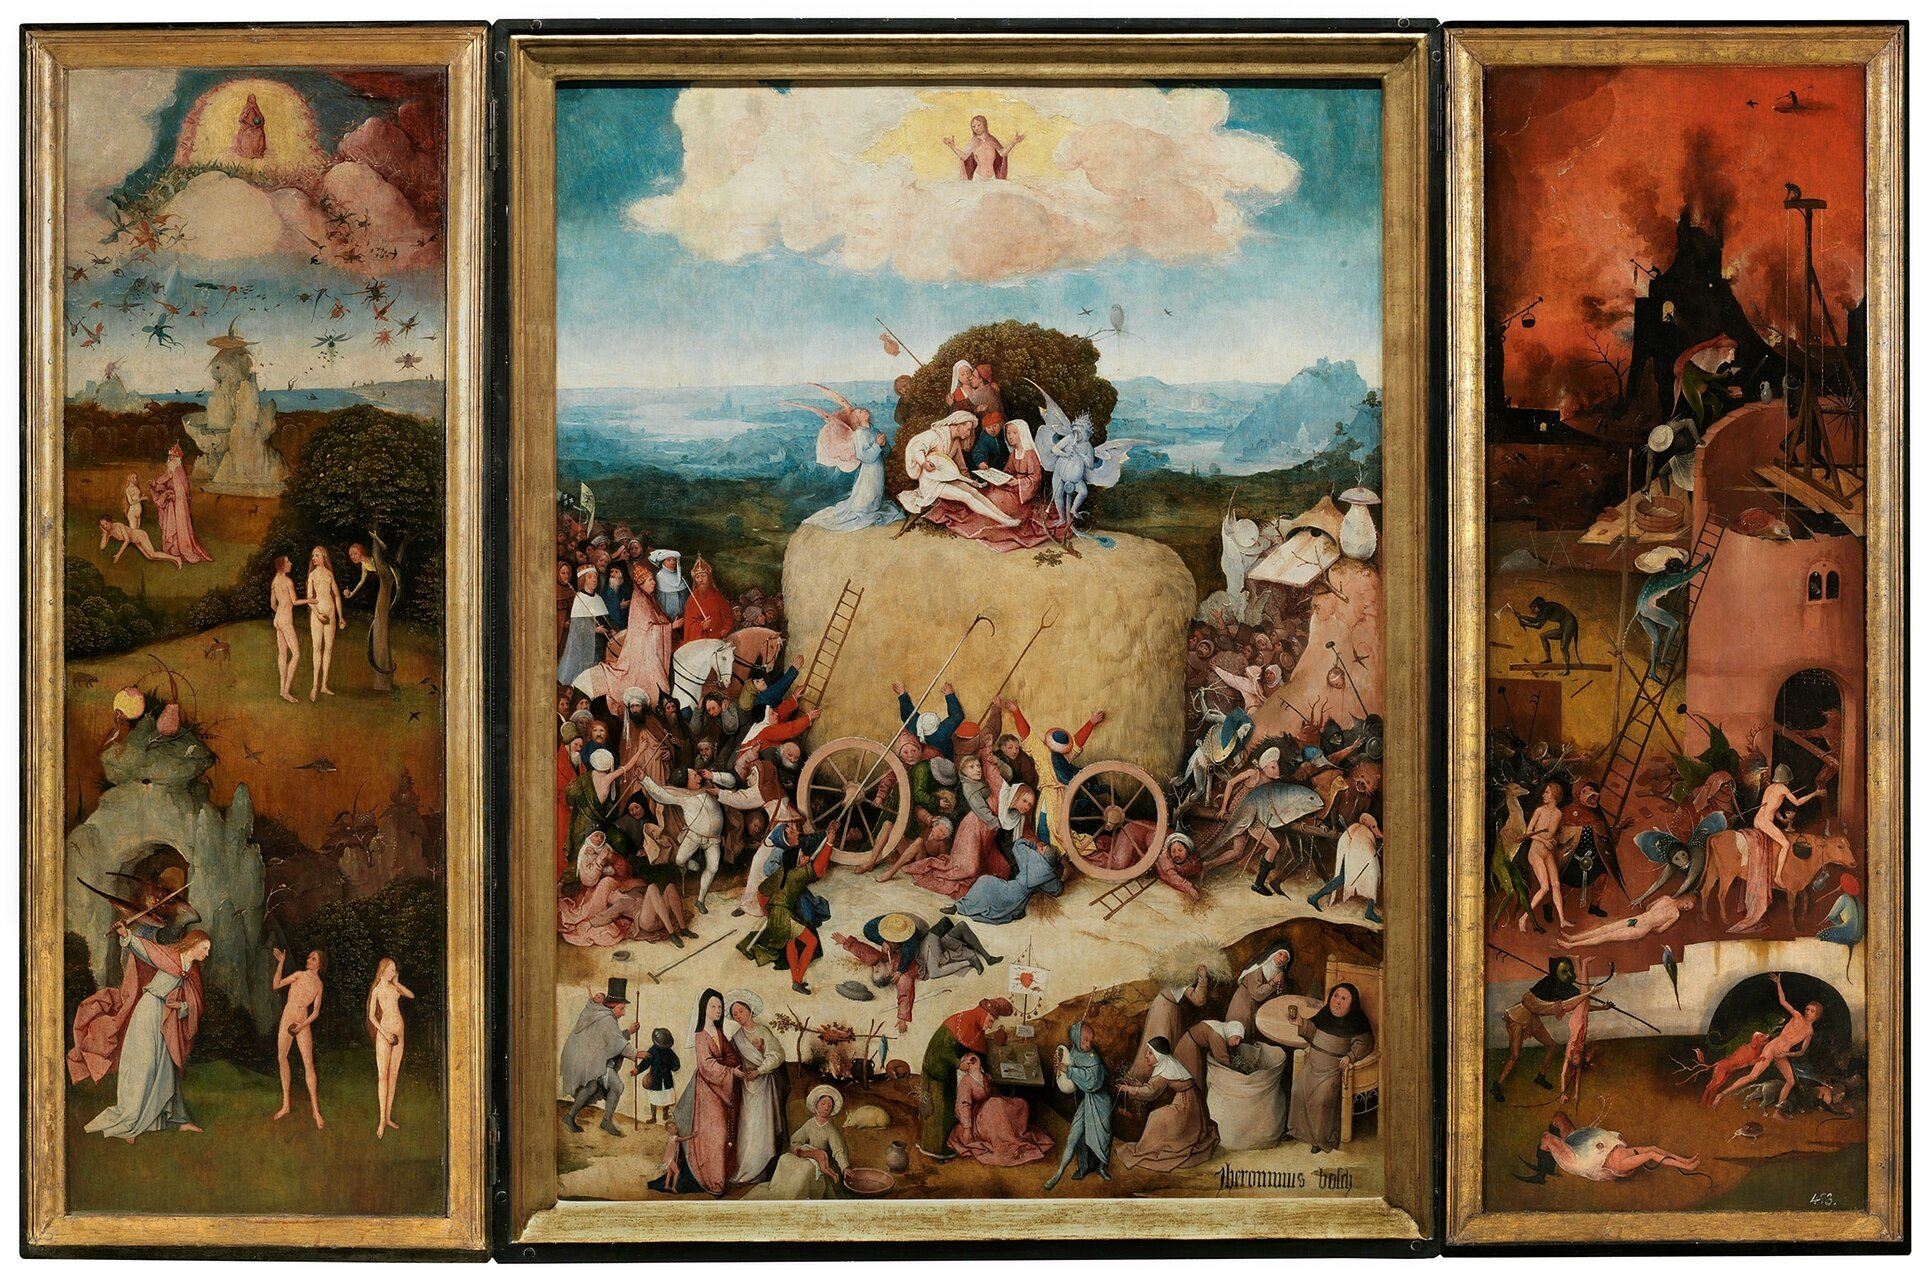 Bosch's monsters get new life for 500th anniversary exhibition in the Netherlands